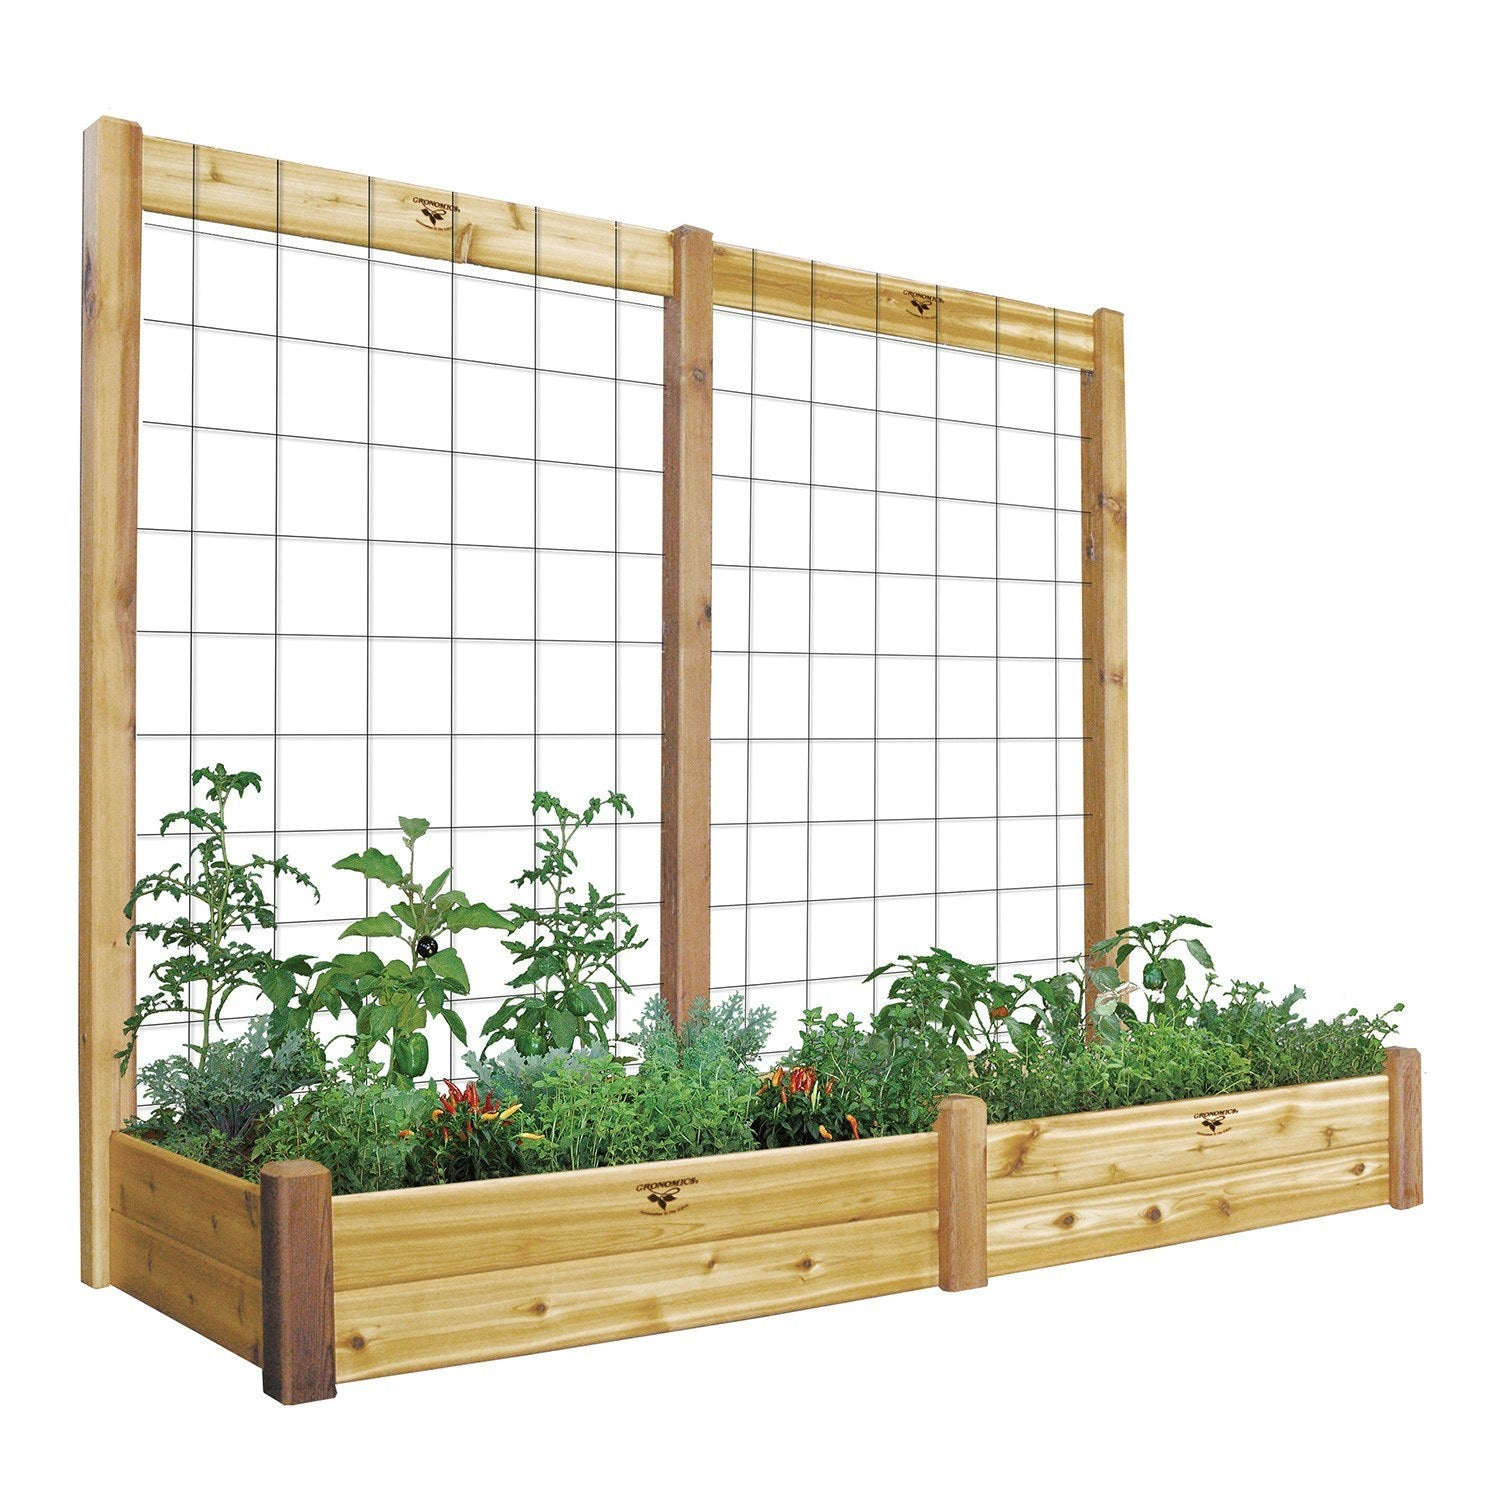 Head Planter Pots For Sale Gronomics Two Tier 34 X 95 X 80 Raised Garden Bed With